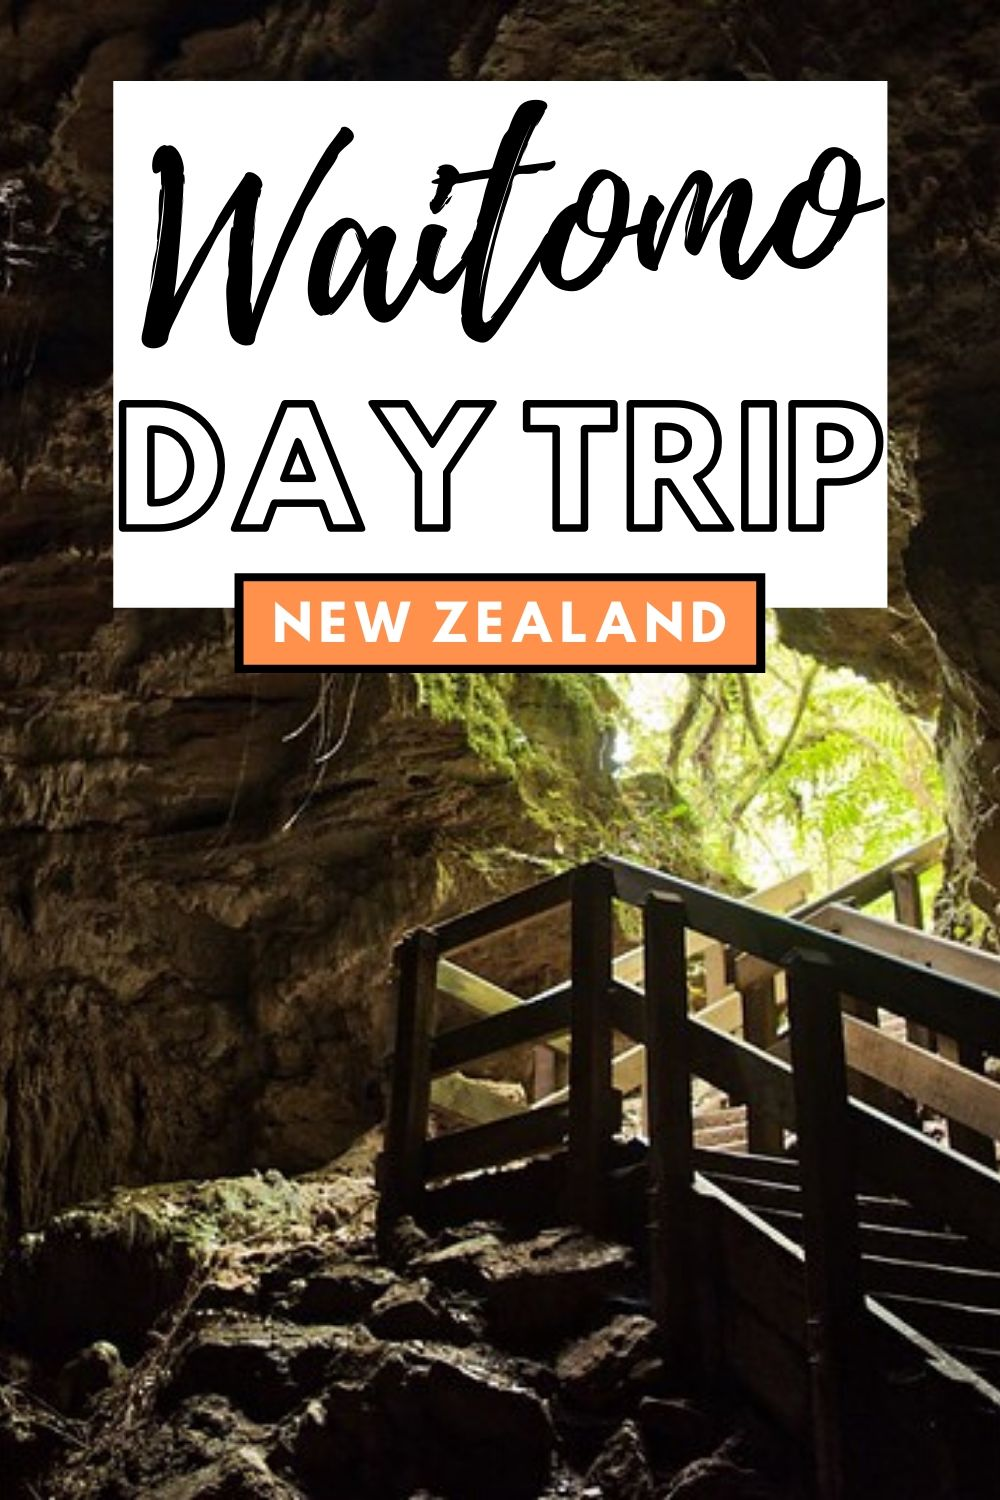 Here are 9 free things to do in Waitomo that you didn't know were there! From a beautiful waterfall to some great hikes, and even free glow worm caves! There's more to Waitomo than the famous glow worm adventure tours | New Zealand North Island, New Zealand Road Trip, Waitomo Glow Worm Tours, New Zealand Bucket List | #NewZealand #GlowWorms